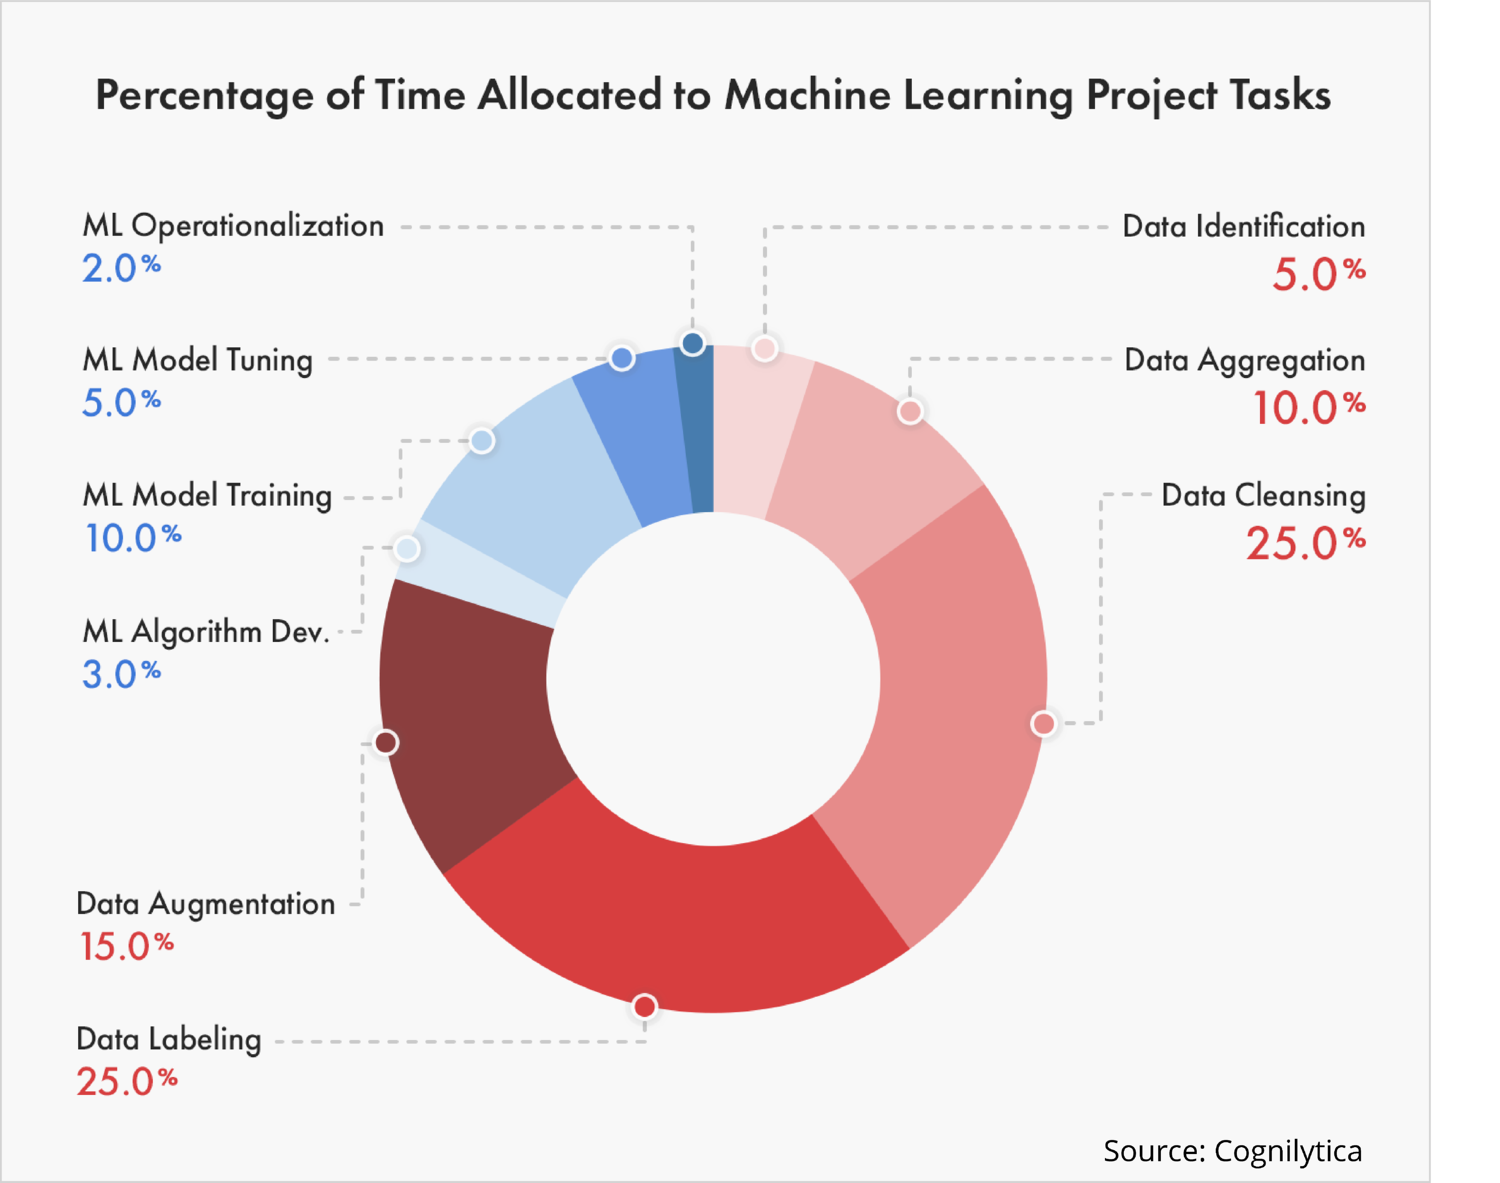 Percentage of Time Allocated to Machine Learning Project Tasks